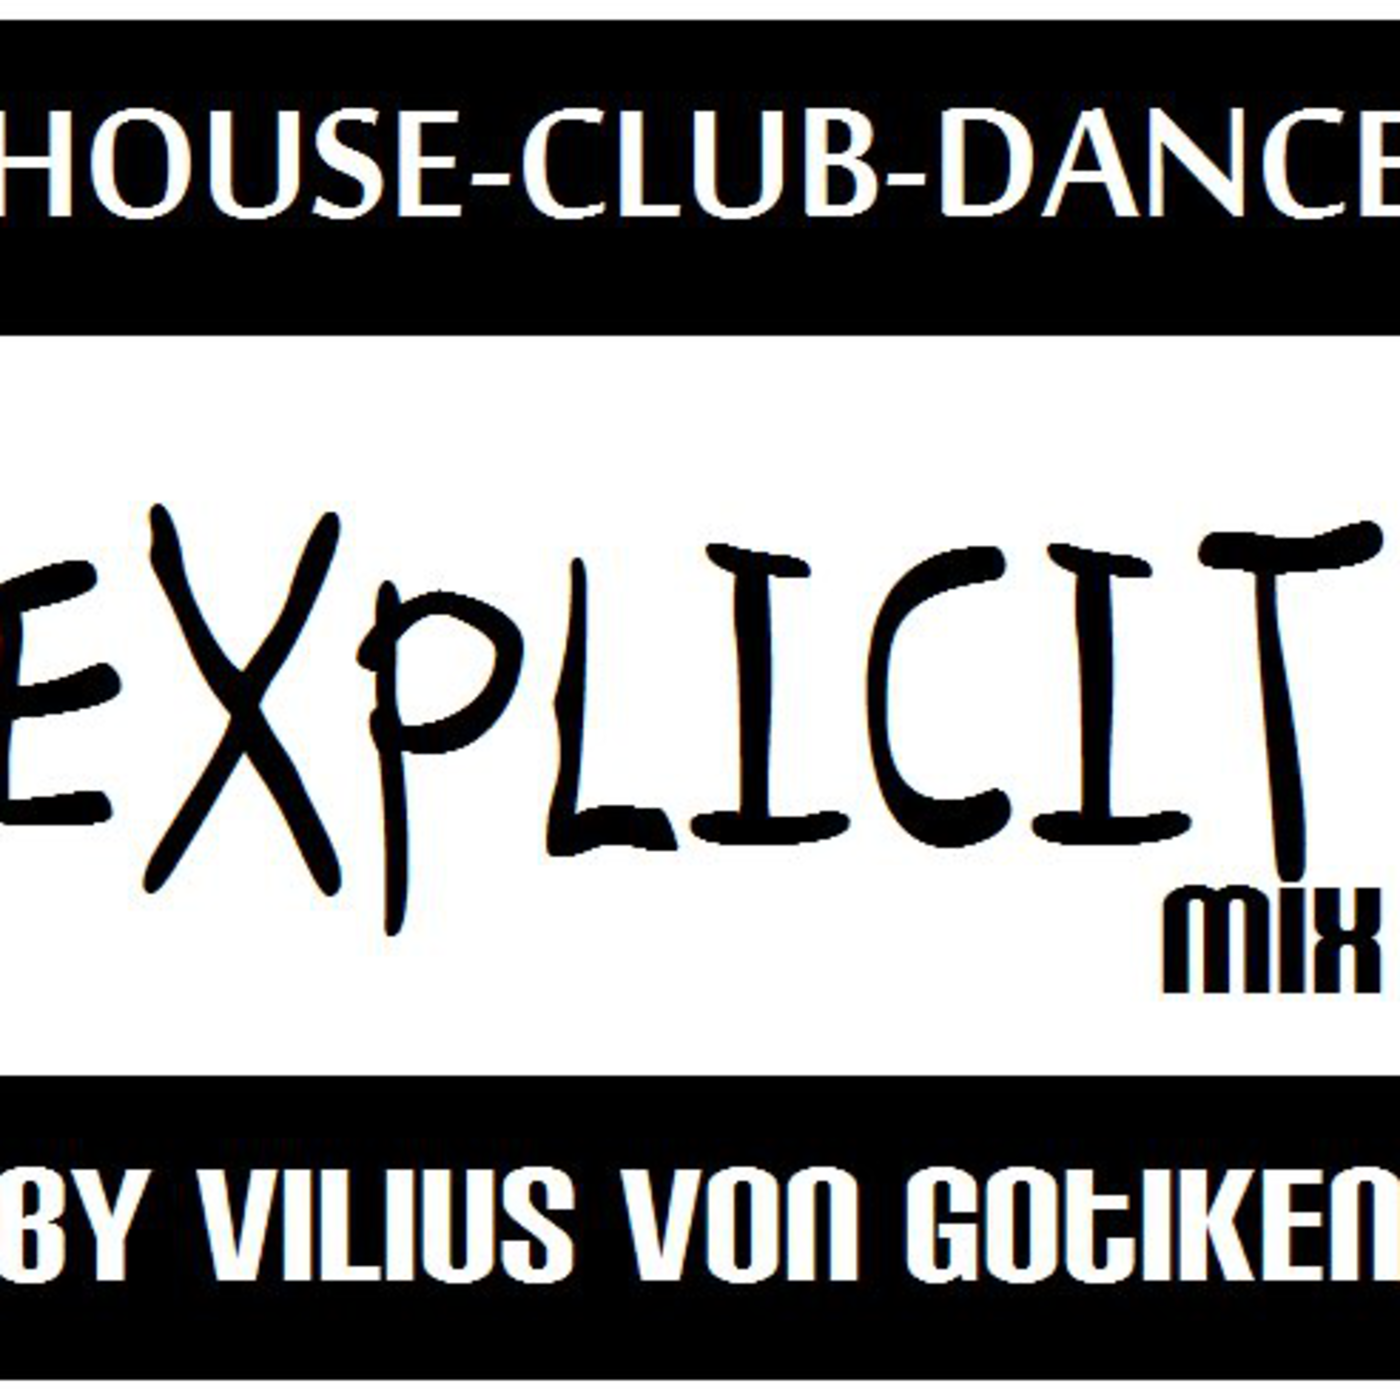 House-Club-Dance, The Explicit Mix House Music: Rhythm